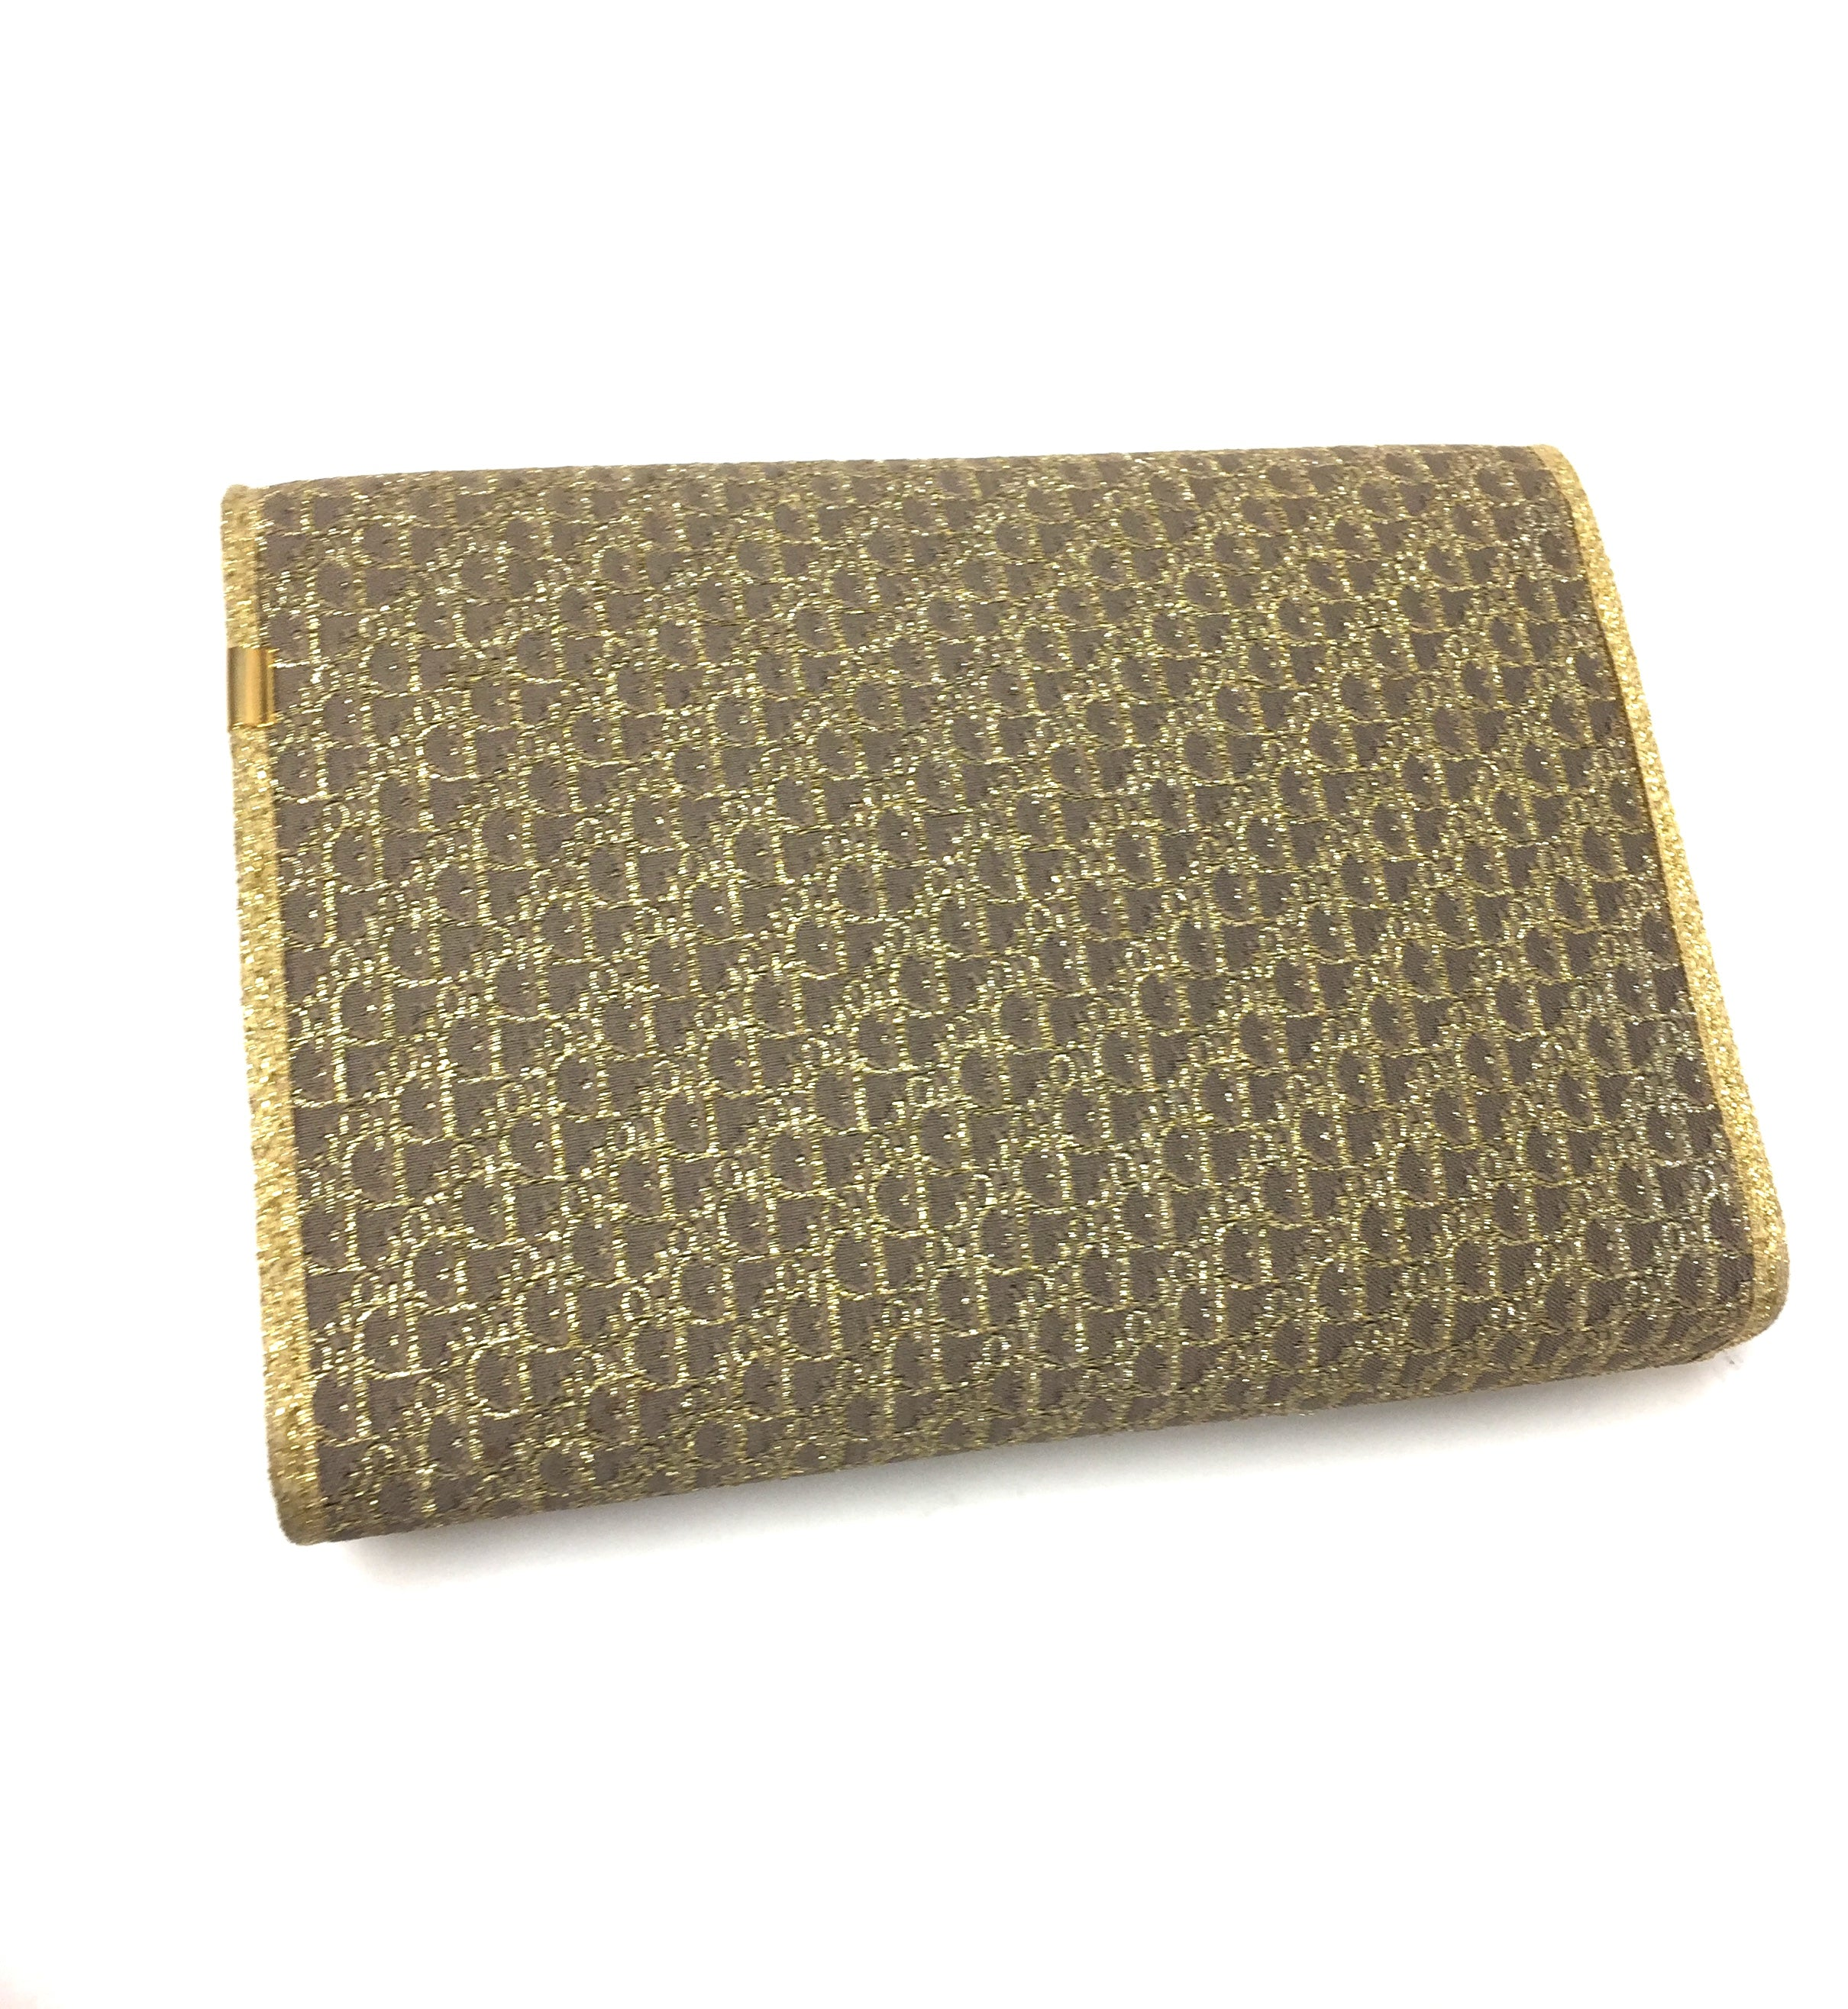 340e6fb2a2 ... bisbiz.com CHRISTIAN DIOR Vintage Taupe/Metallic Gold Logo-Patterned  Fabric Evening Clutch ...